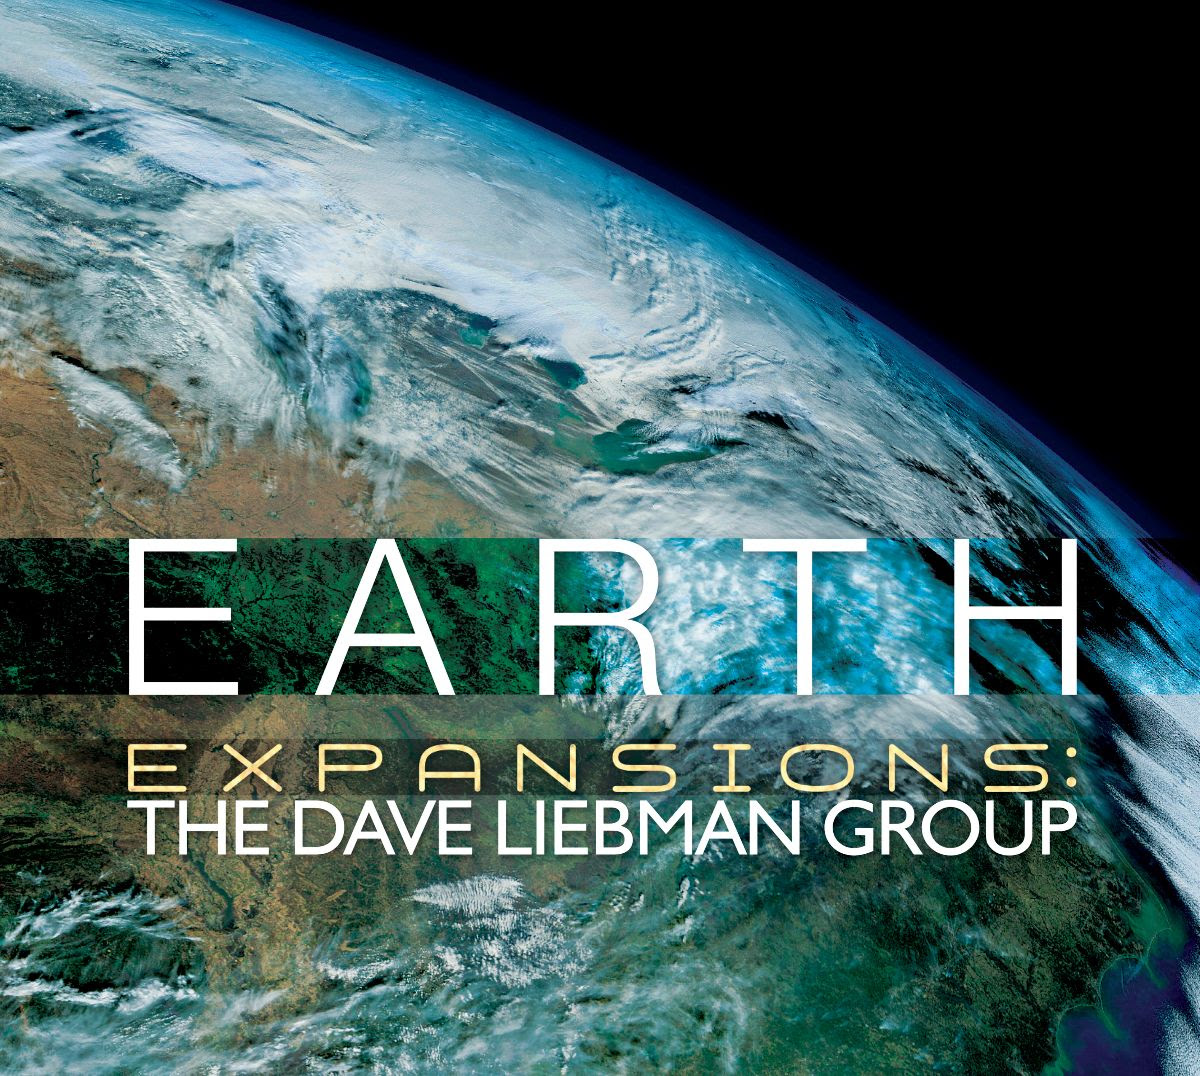 REVIEW: Dave Liebman 'Earth' Reviewed by Step Tempest